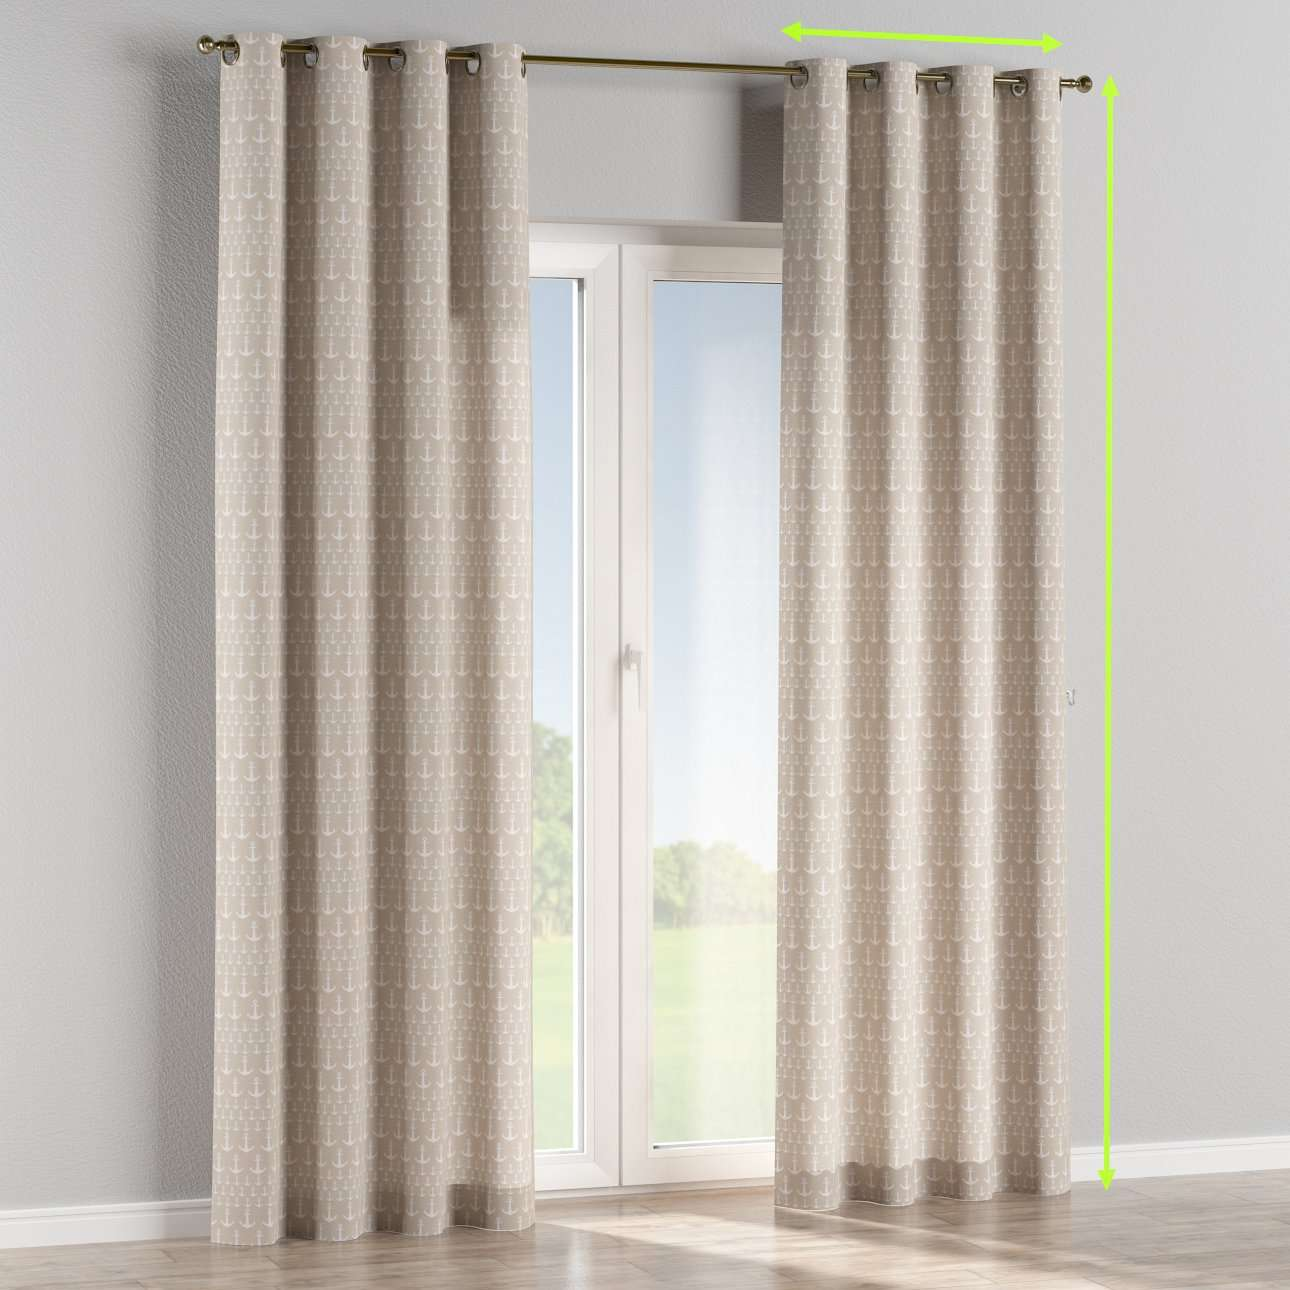 Eyelet curtains in collection Marina, fabric: 140-63